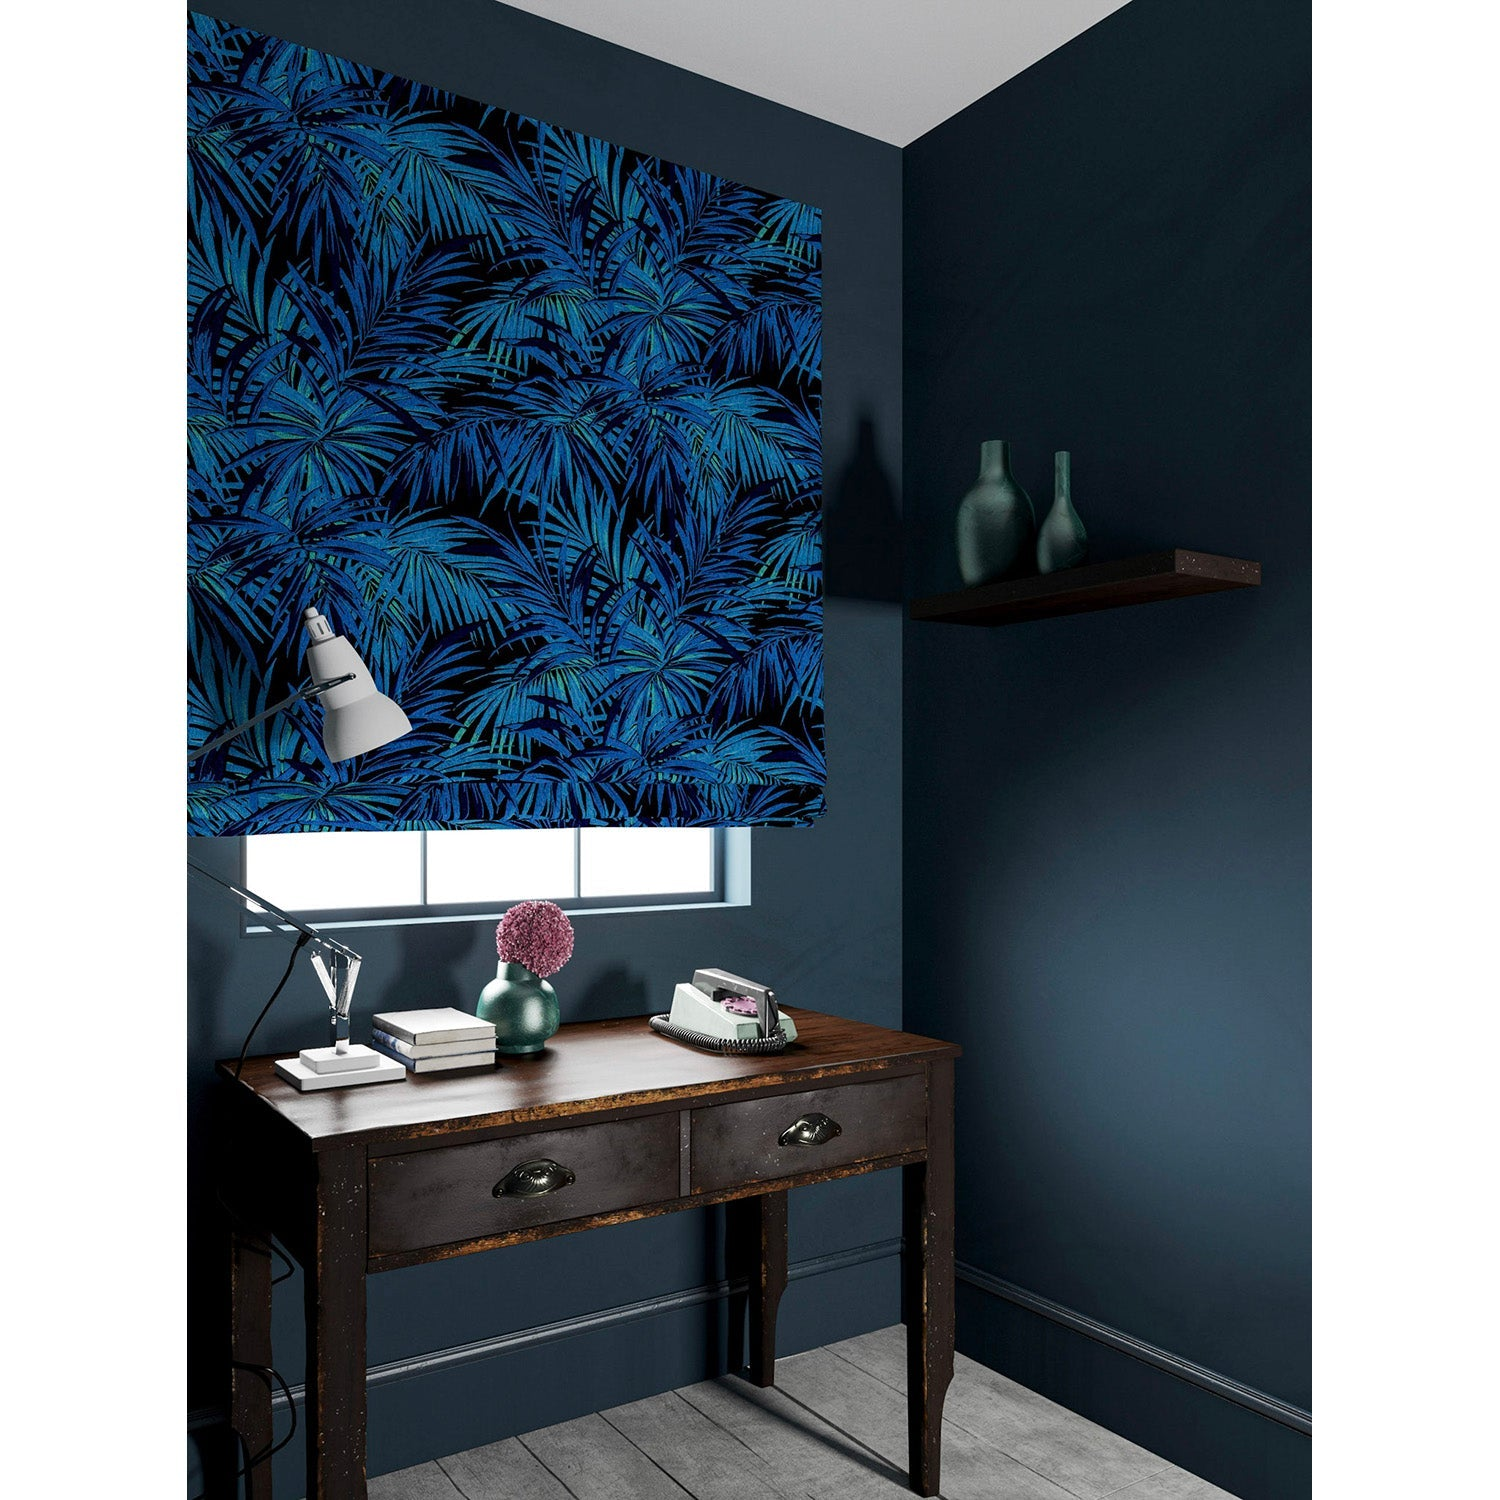 Velvet blind in a electric blue coloured velvet fabric with stain resistant finish and palm tree leaf design